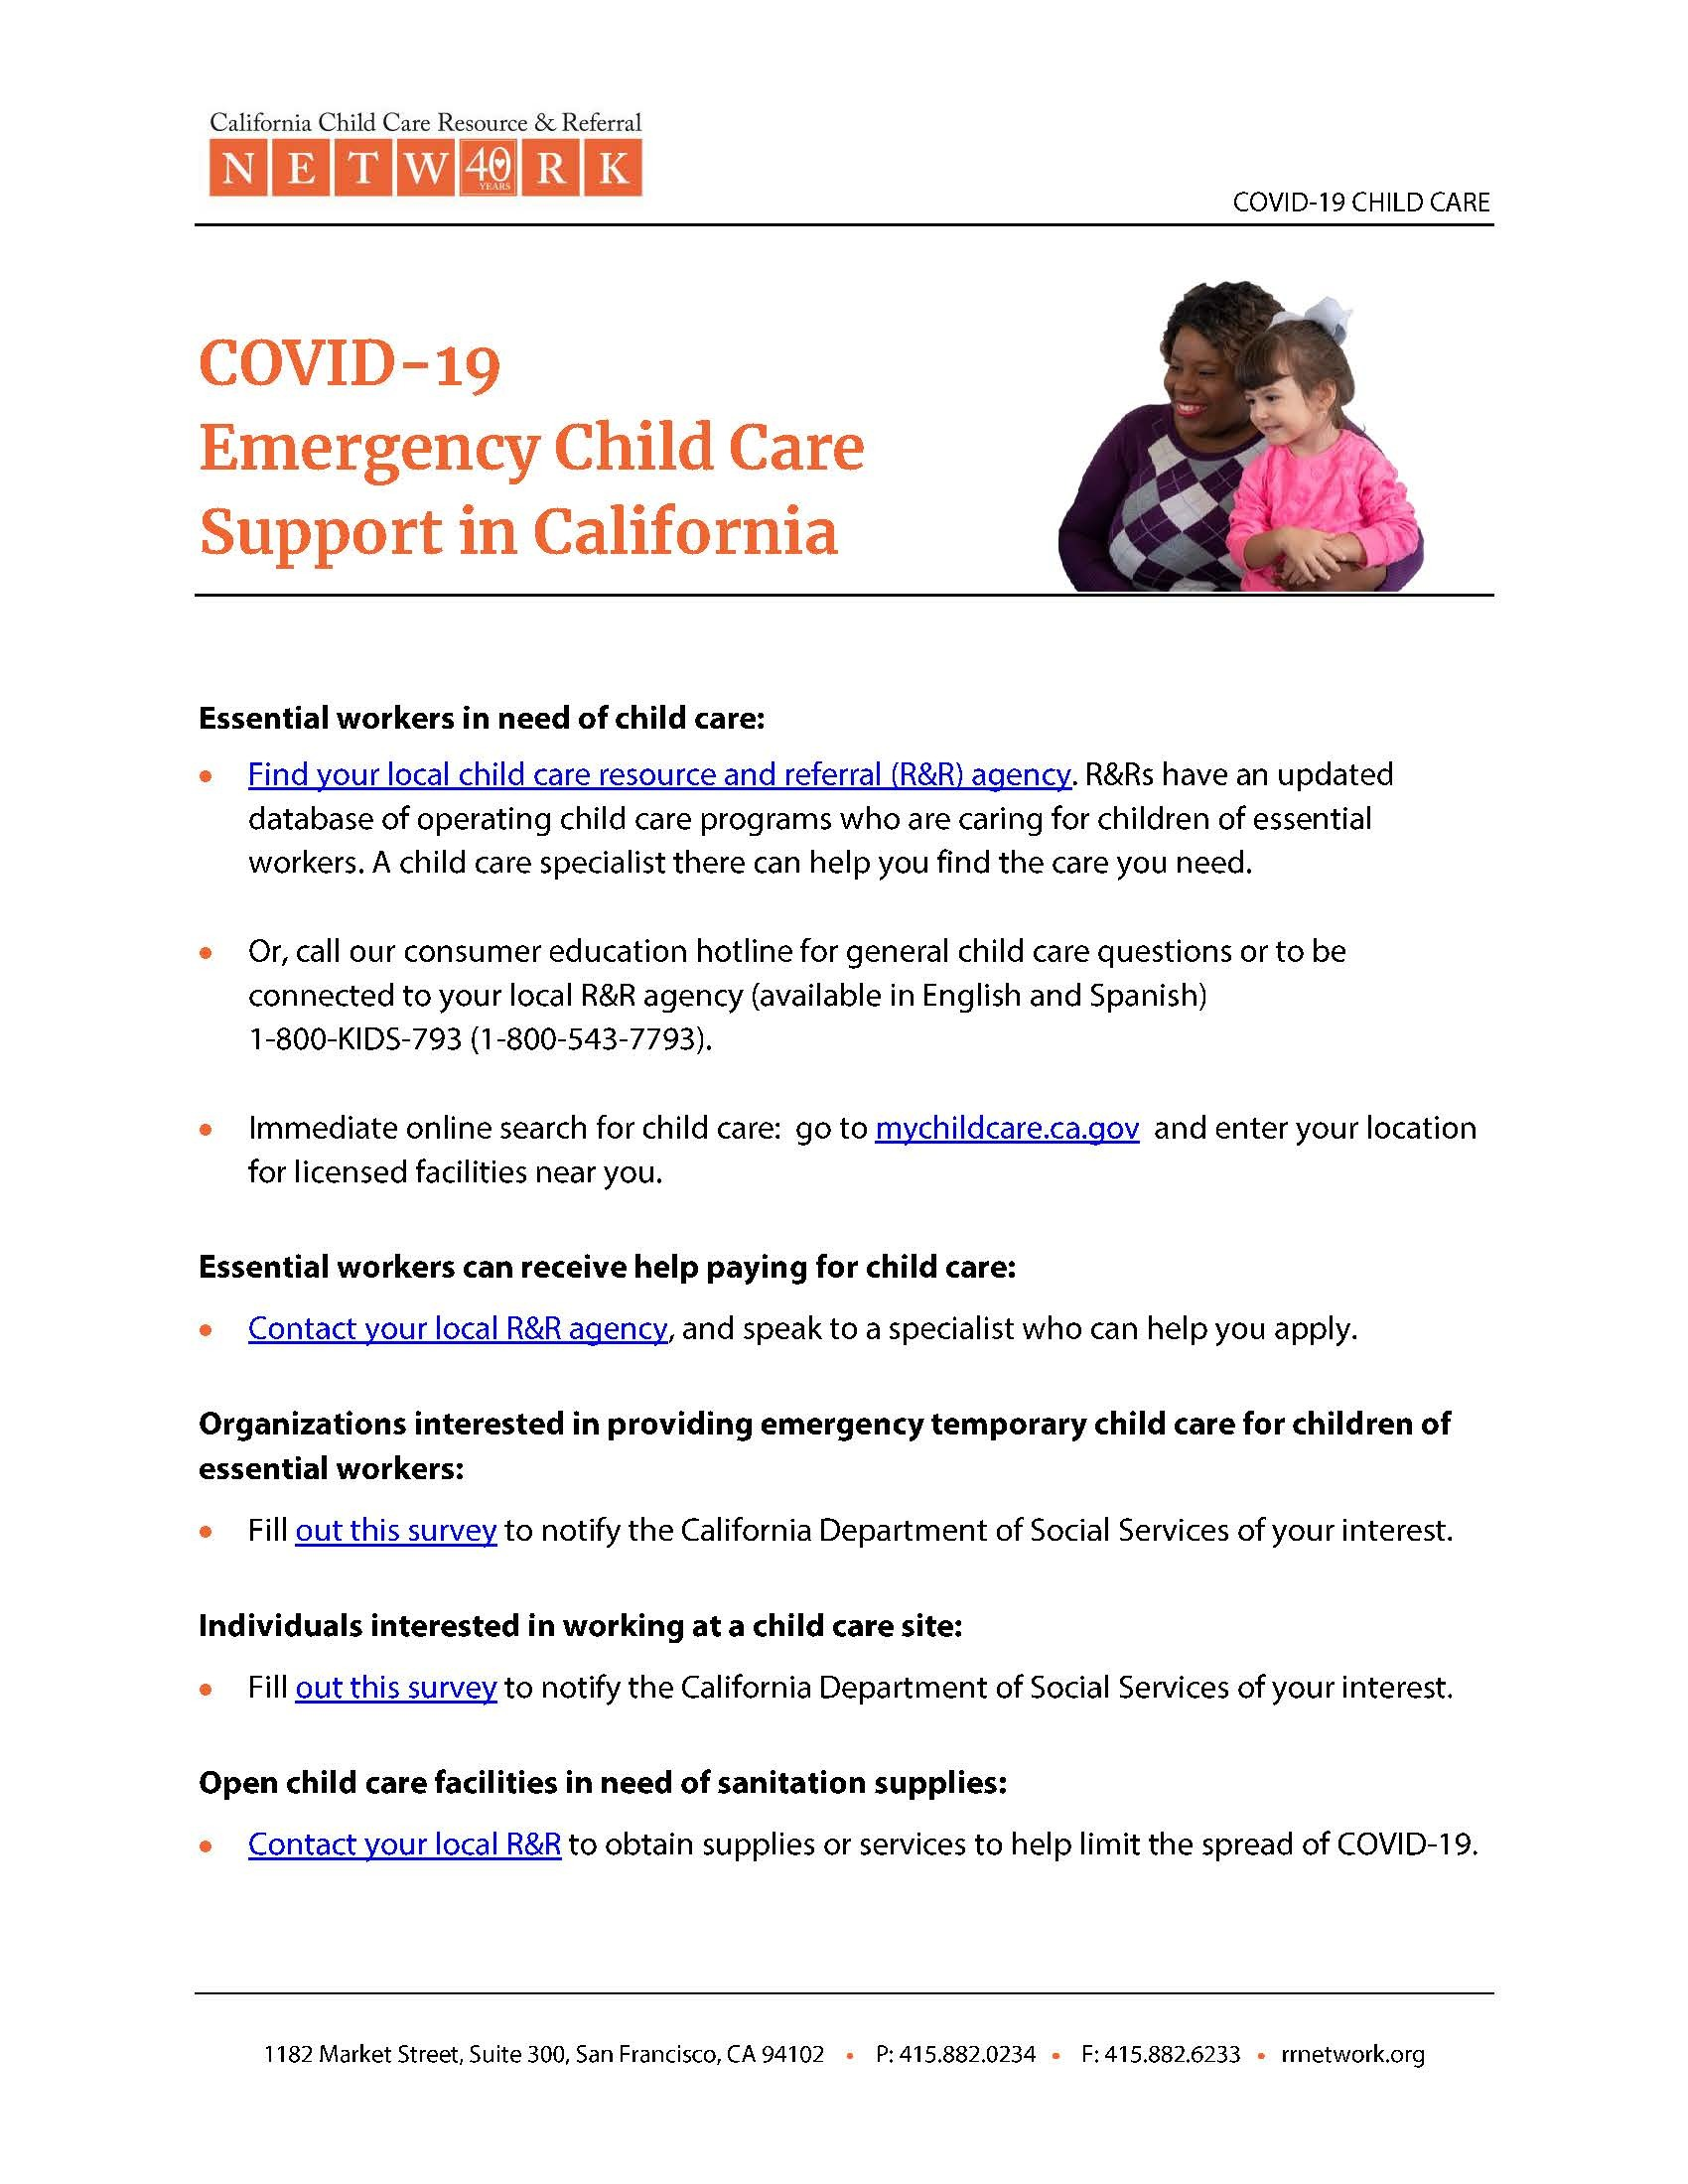 Covid19 Emergency Child Care Support in California